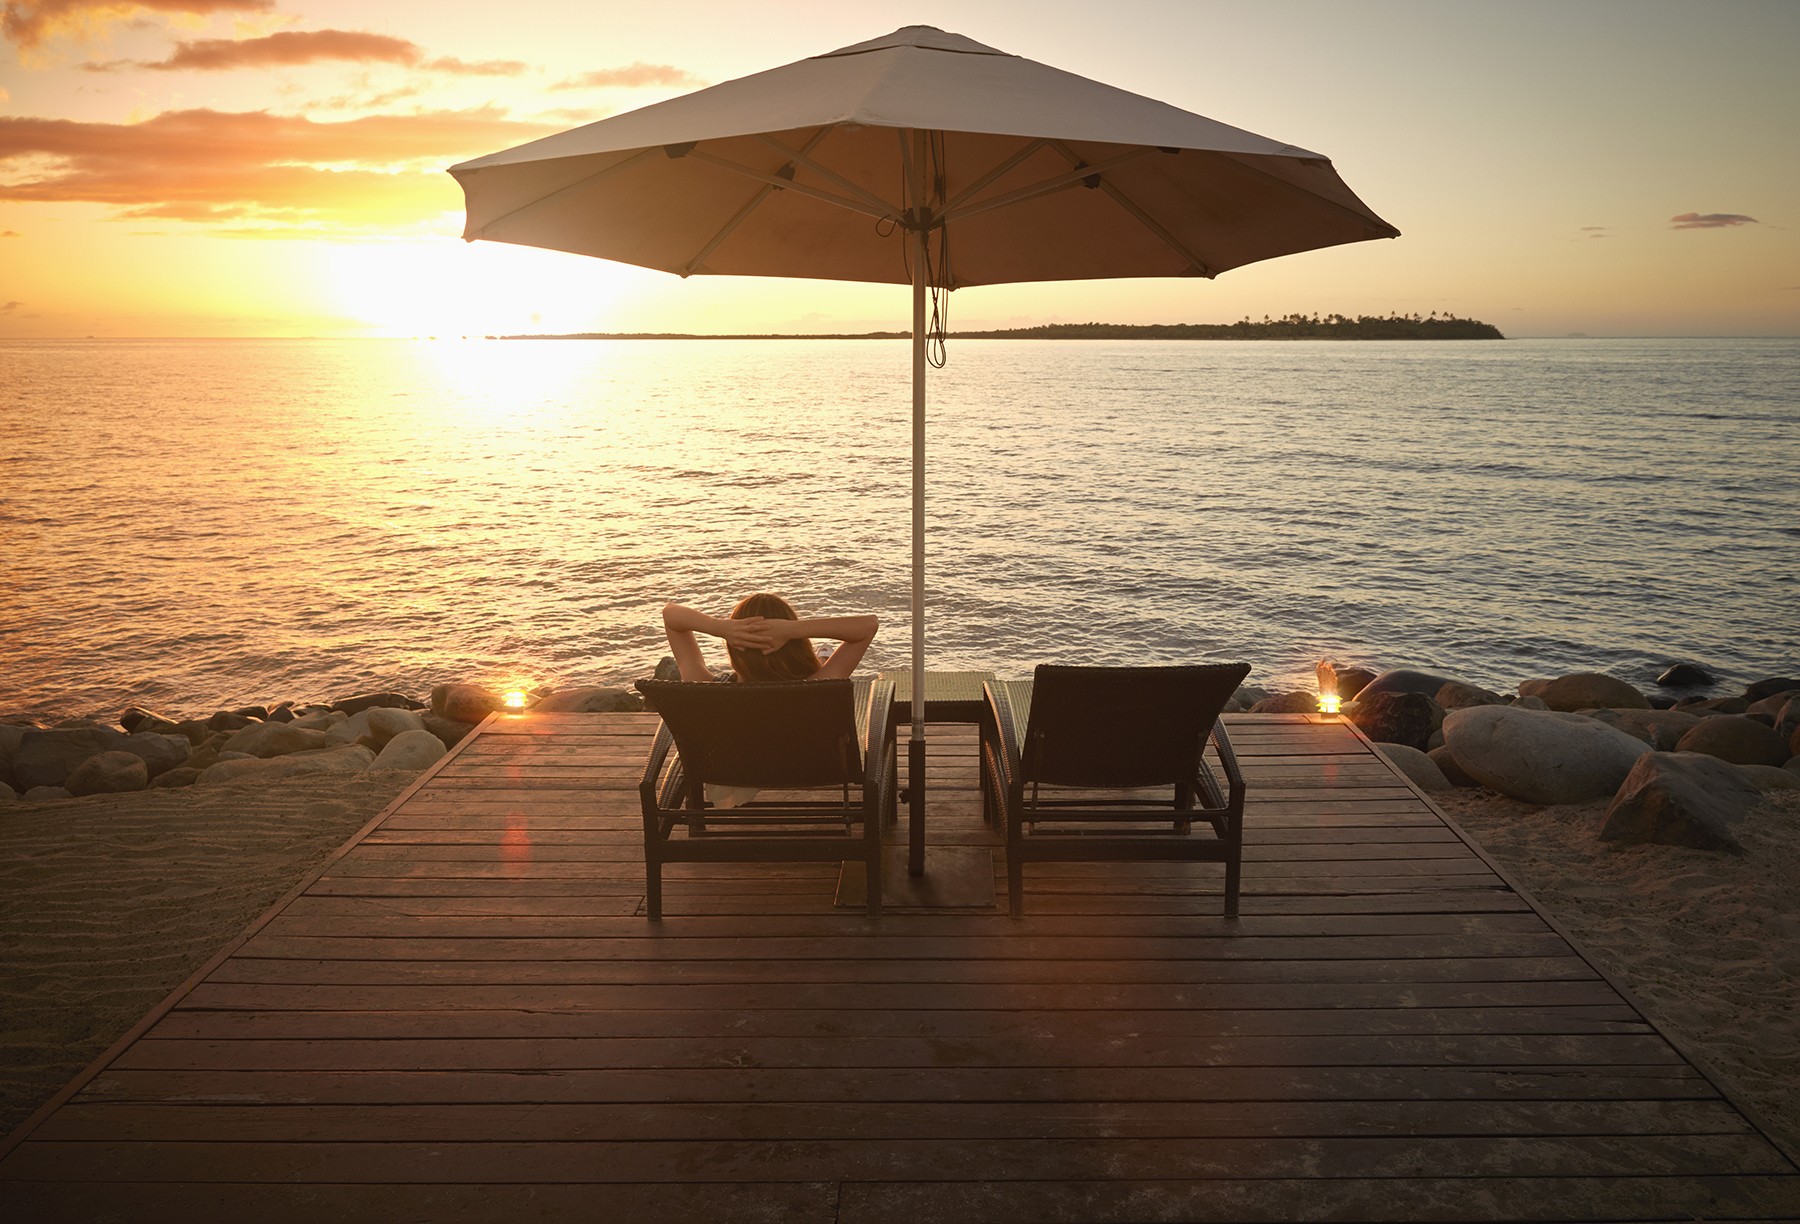 Woman relaxing alone at sunset